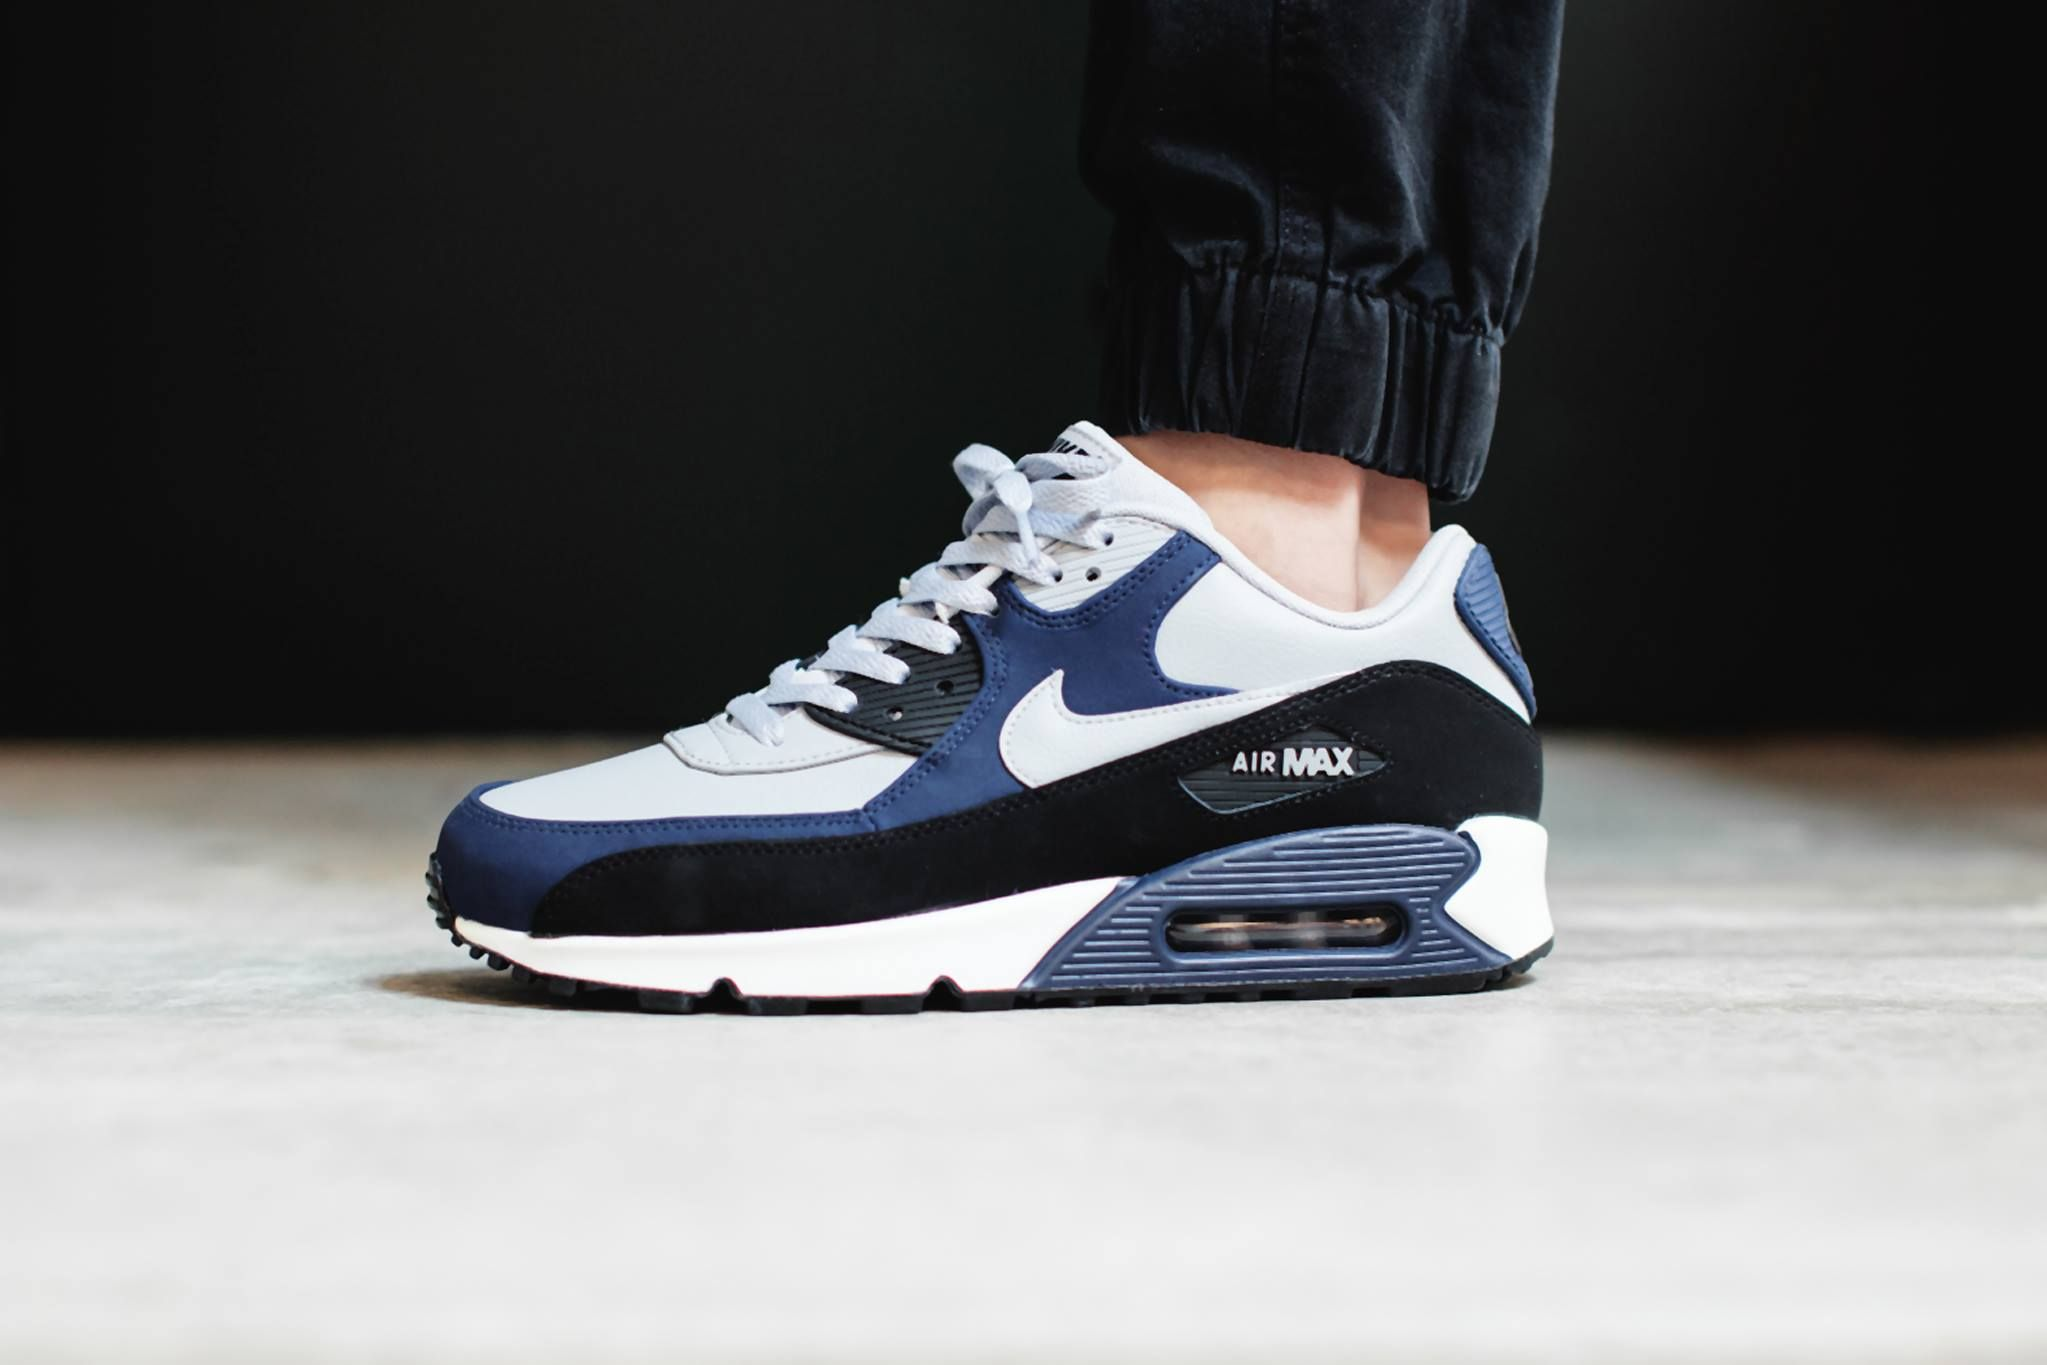 Men's Nike Air Max 90 LTR Black Blue Wolf Grey Sneakers : X71i995